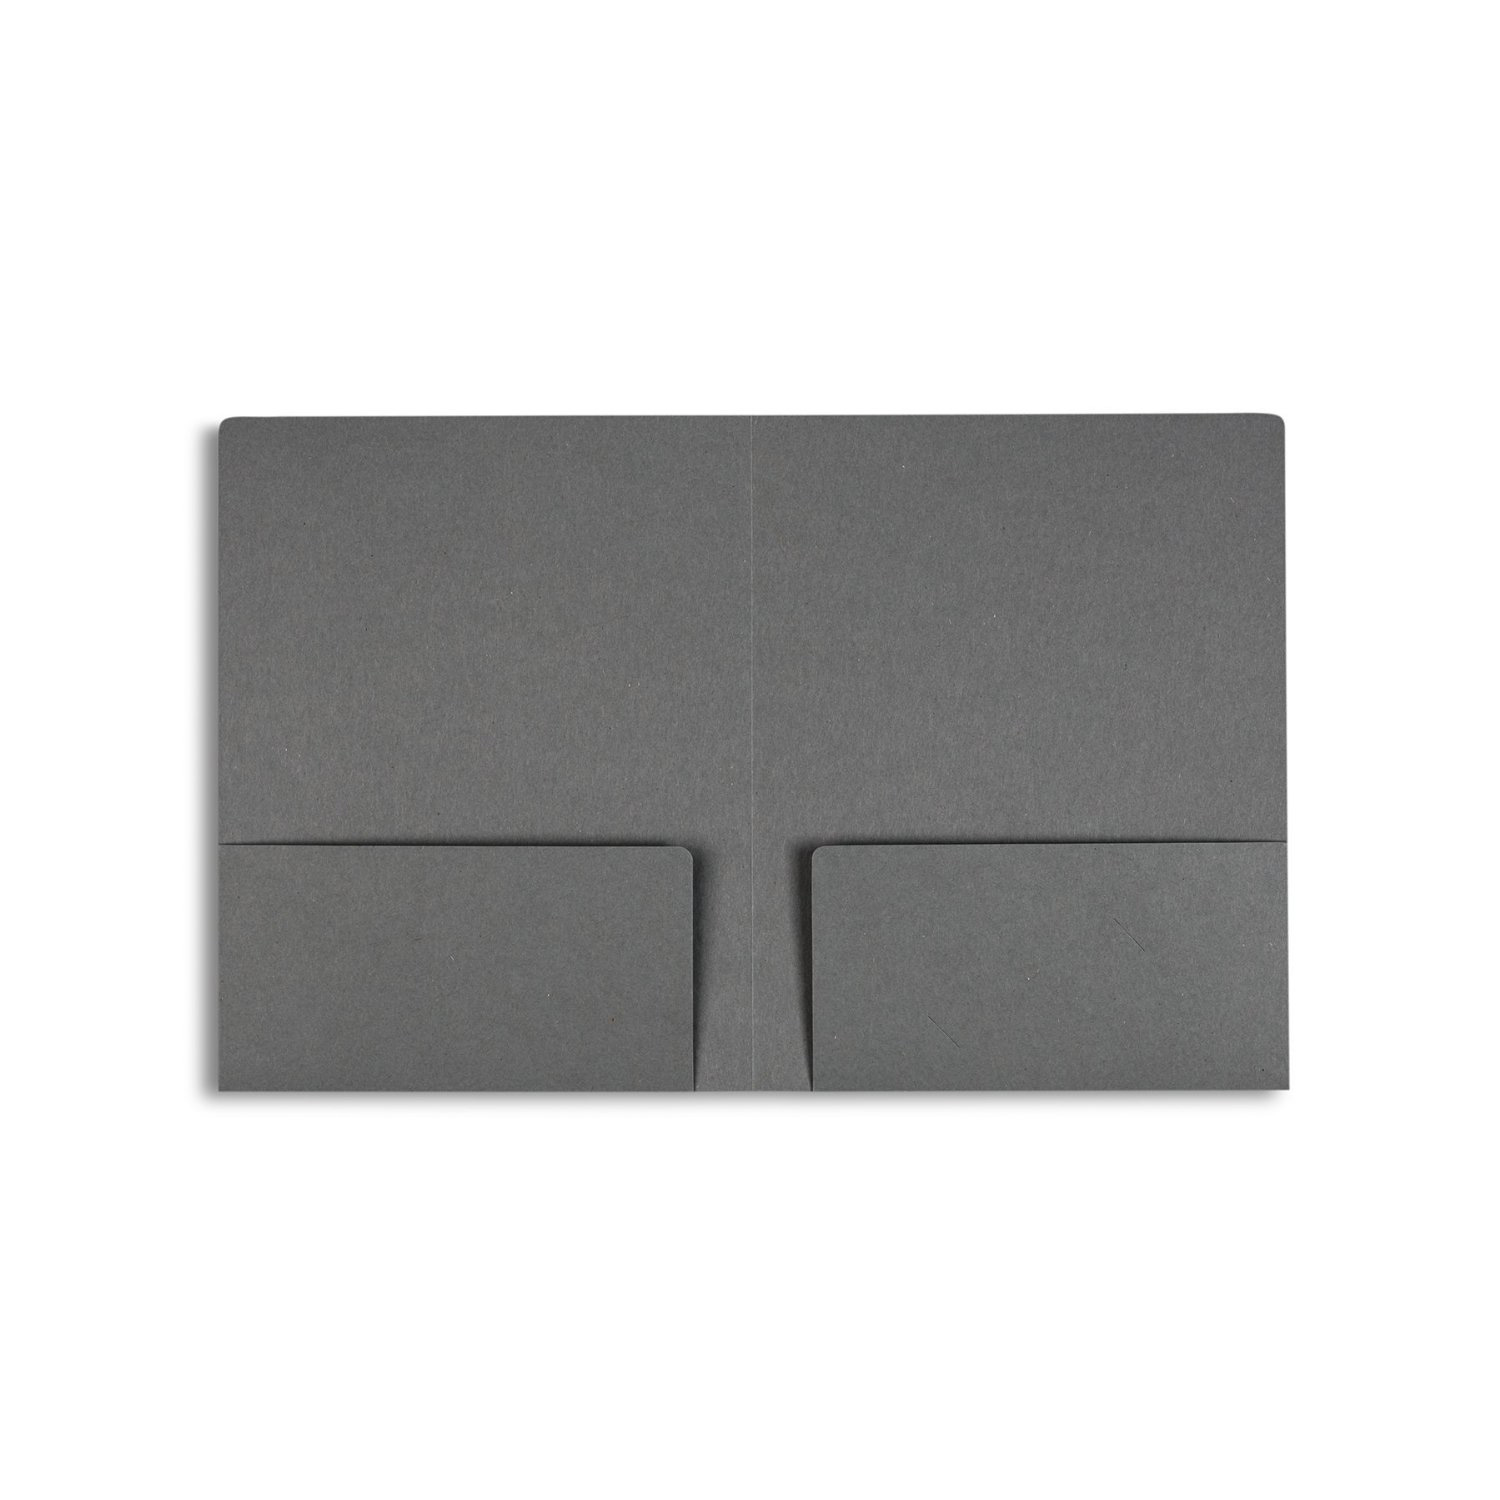 Pina Zangaro Folder Dark Gray Pack/3